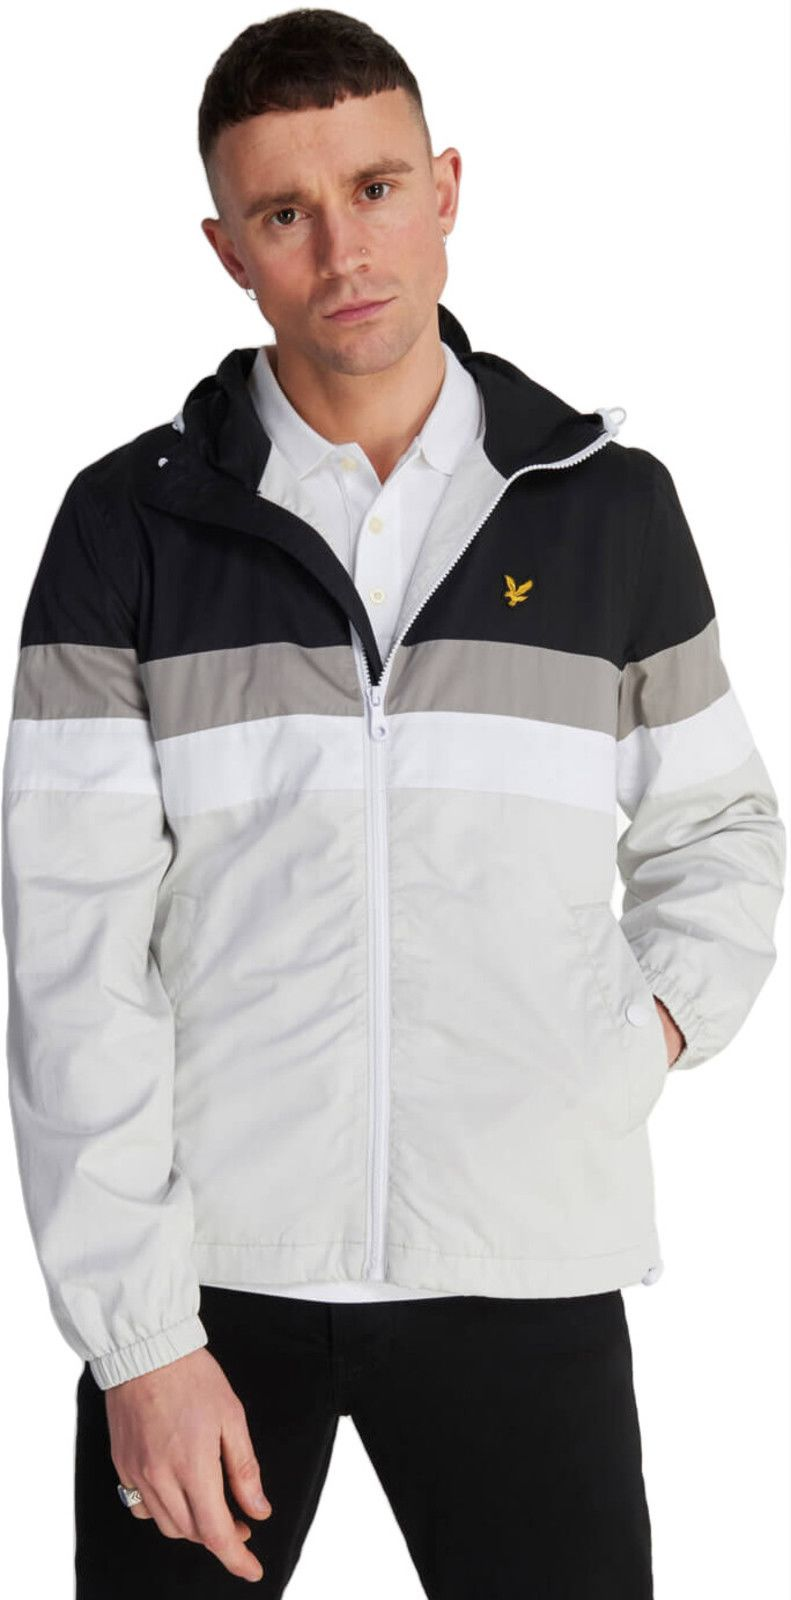 Lyle & Scott Contrast Yoke Jacket Black